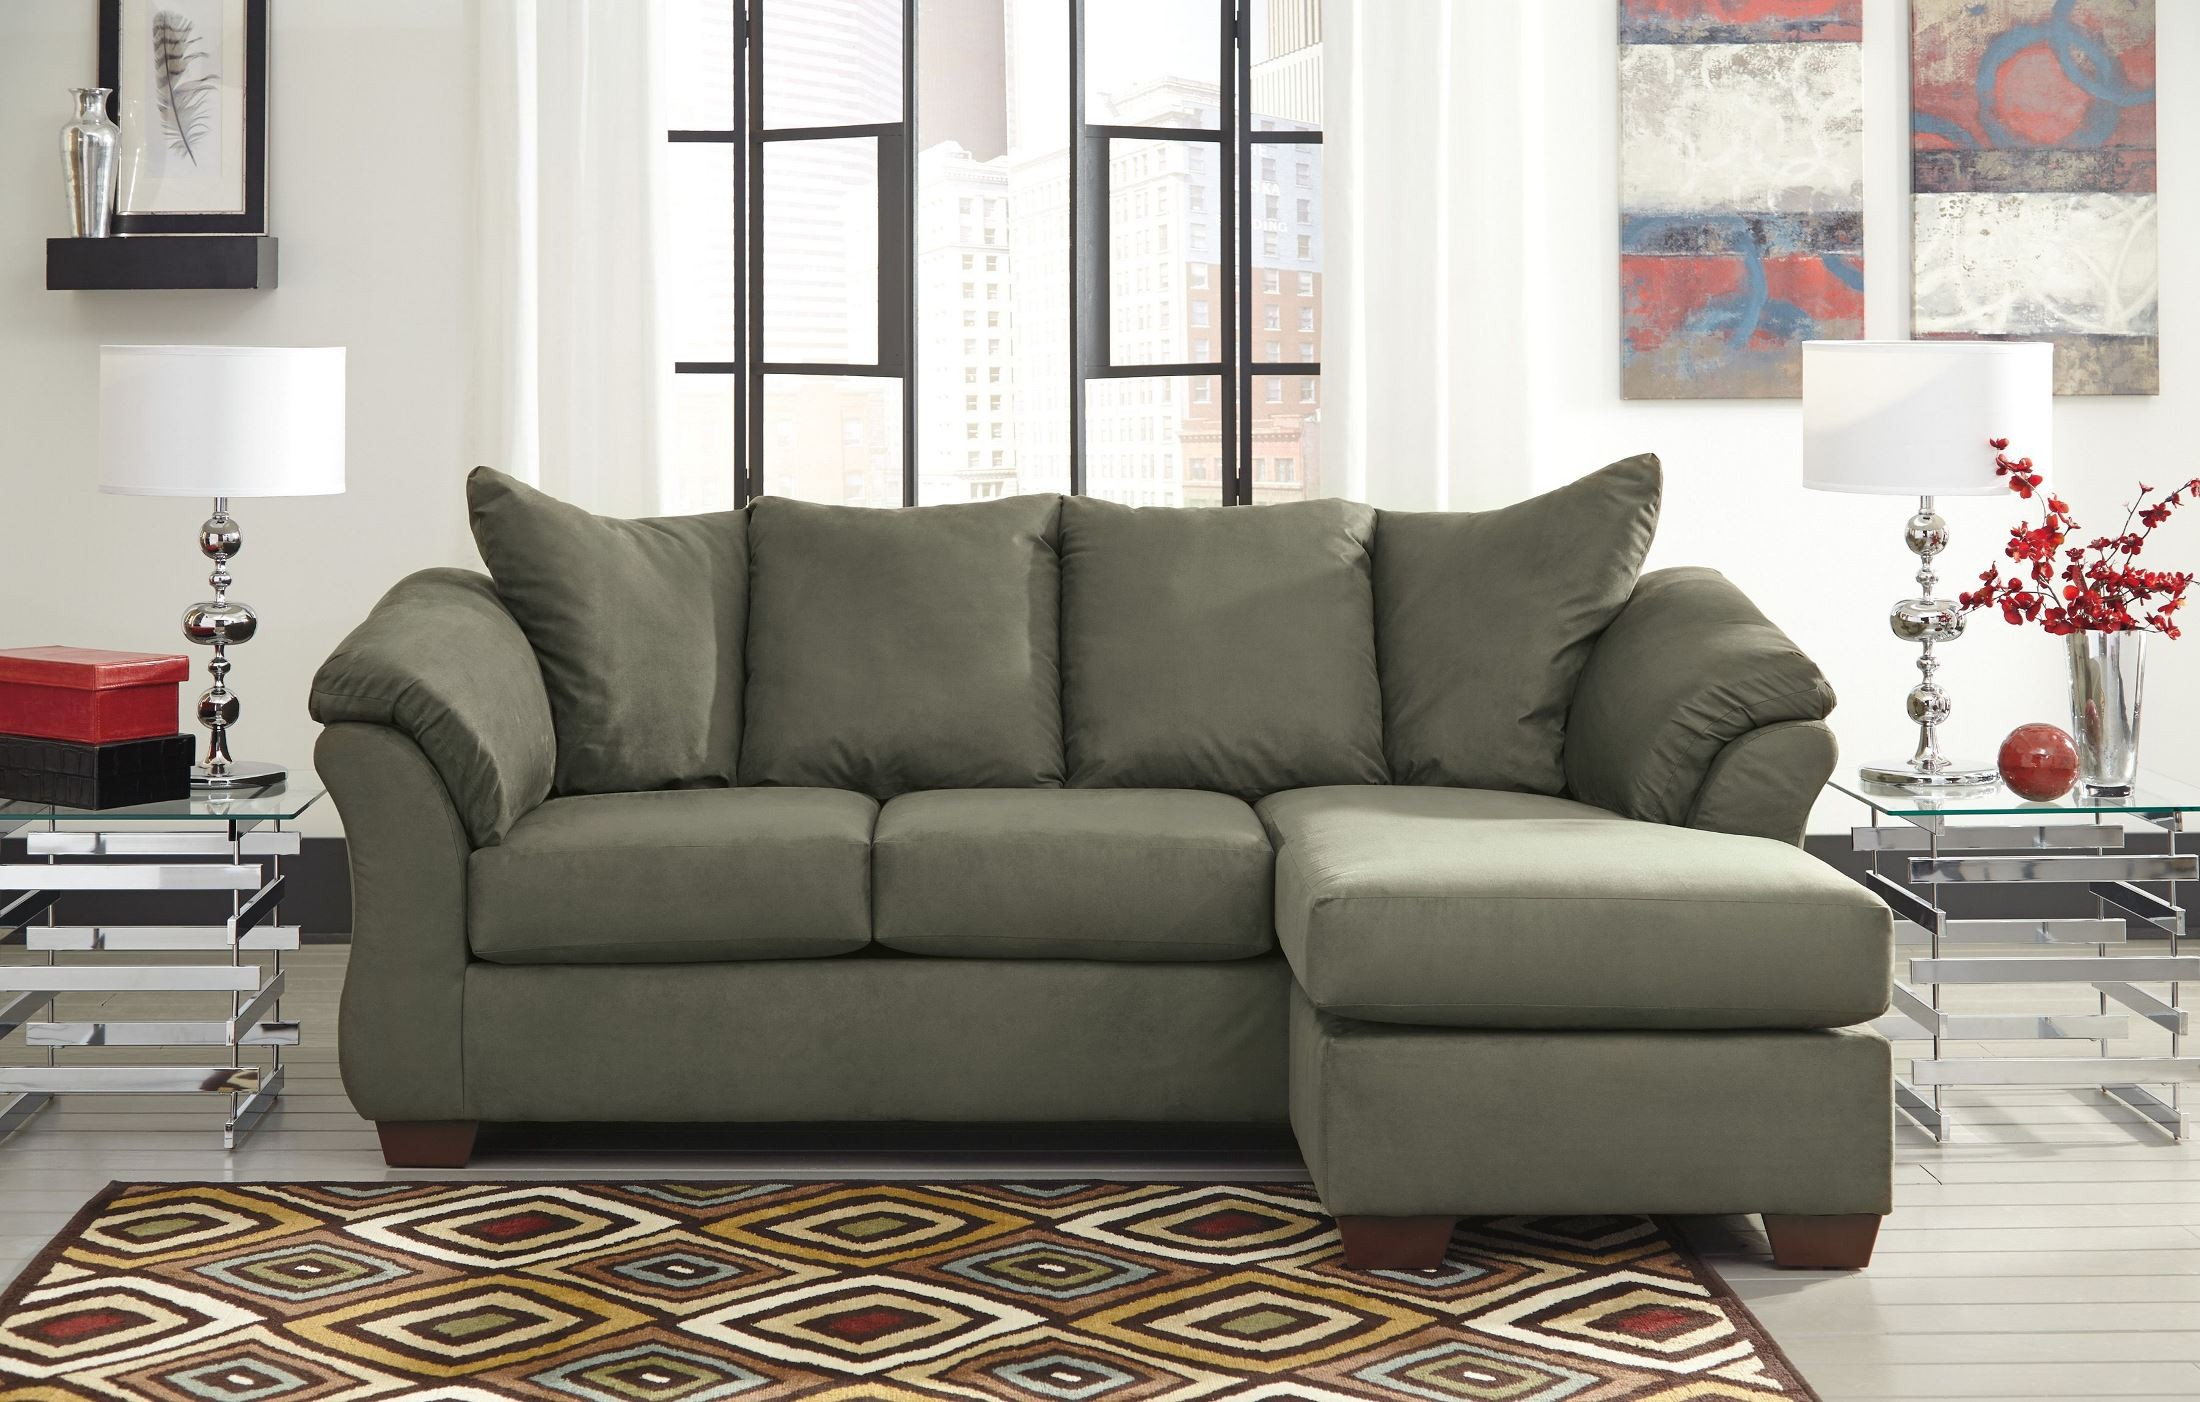 Darcy sage chaise sectional from ashley 7500318 for Ashley sofa chaise